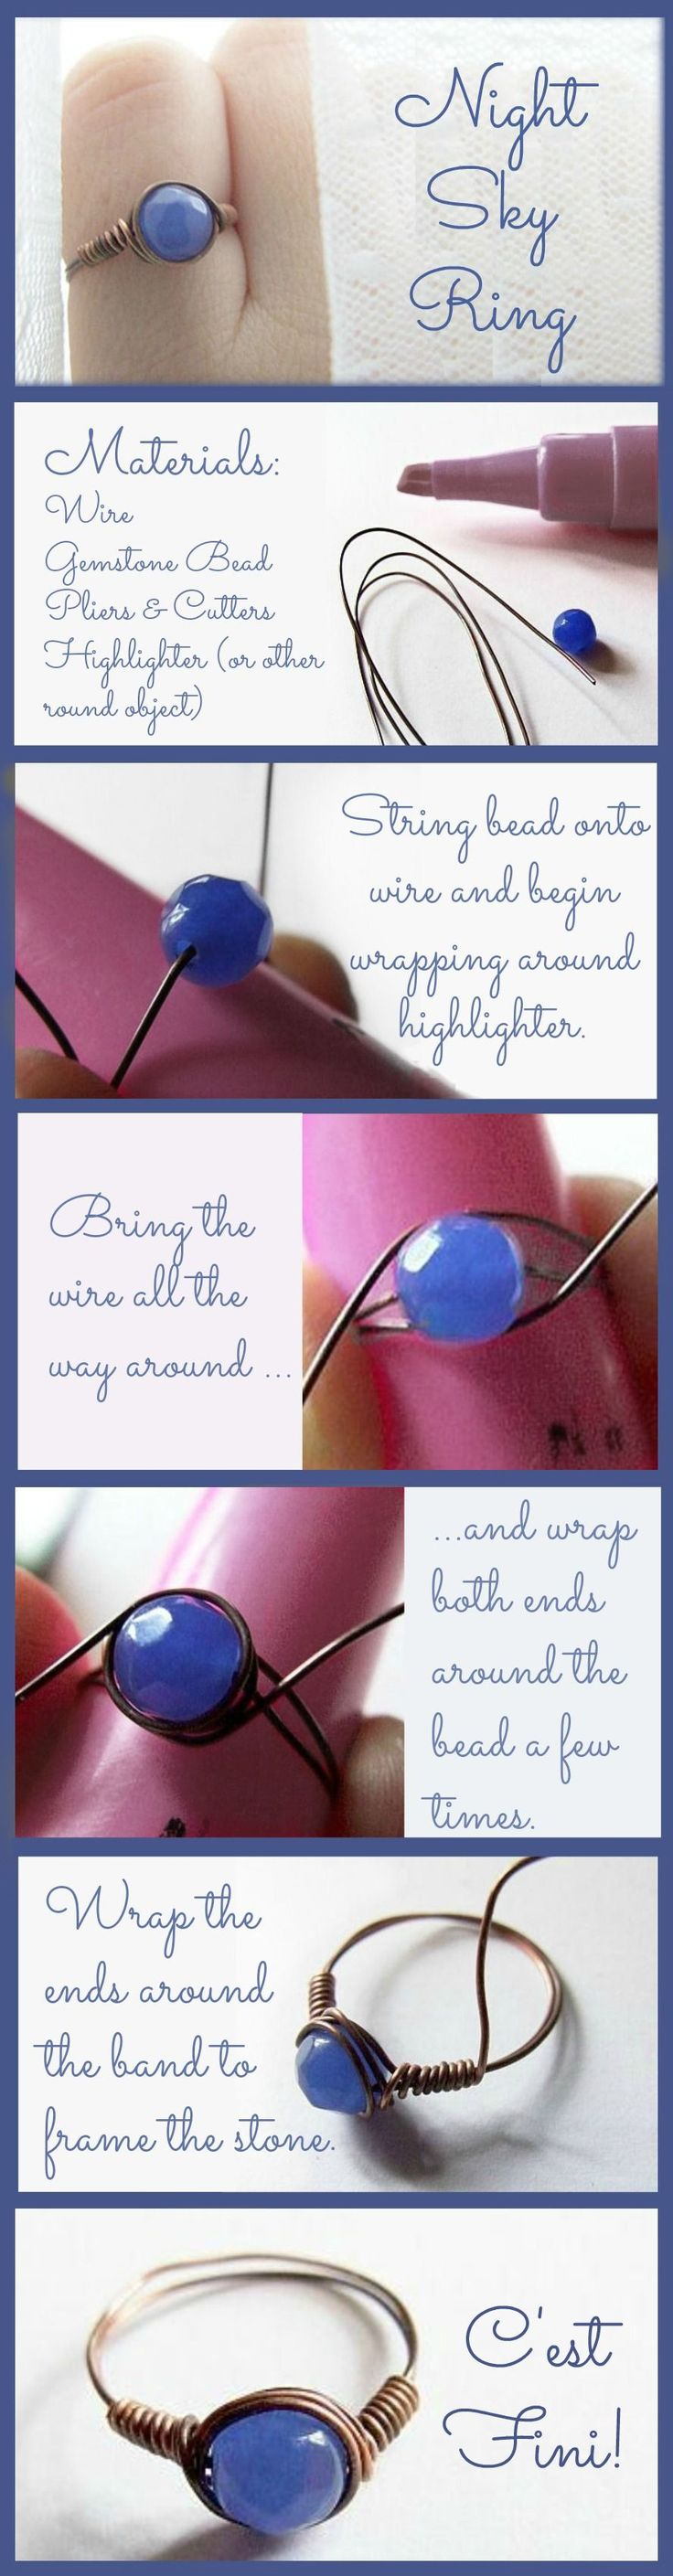 This easy-to-make ring is gorgeous, and so romantic!  Kasia uses copper wire, and a beautiful faceted agate in a shade of blue that is both deep and misty.   http://www.slideshare.net/houseofgemssm/night-sky-ring-simple-wire-wrapping-diy